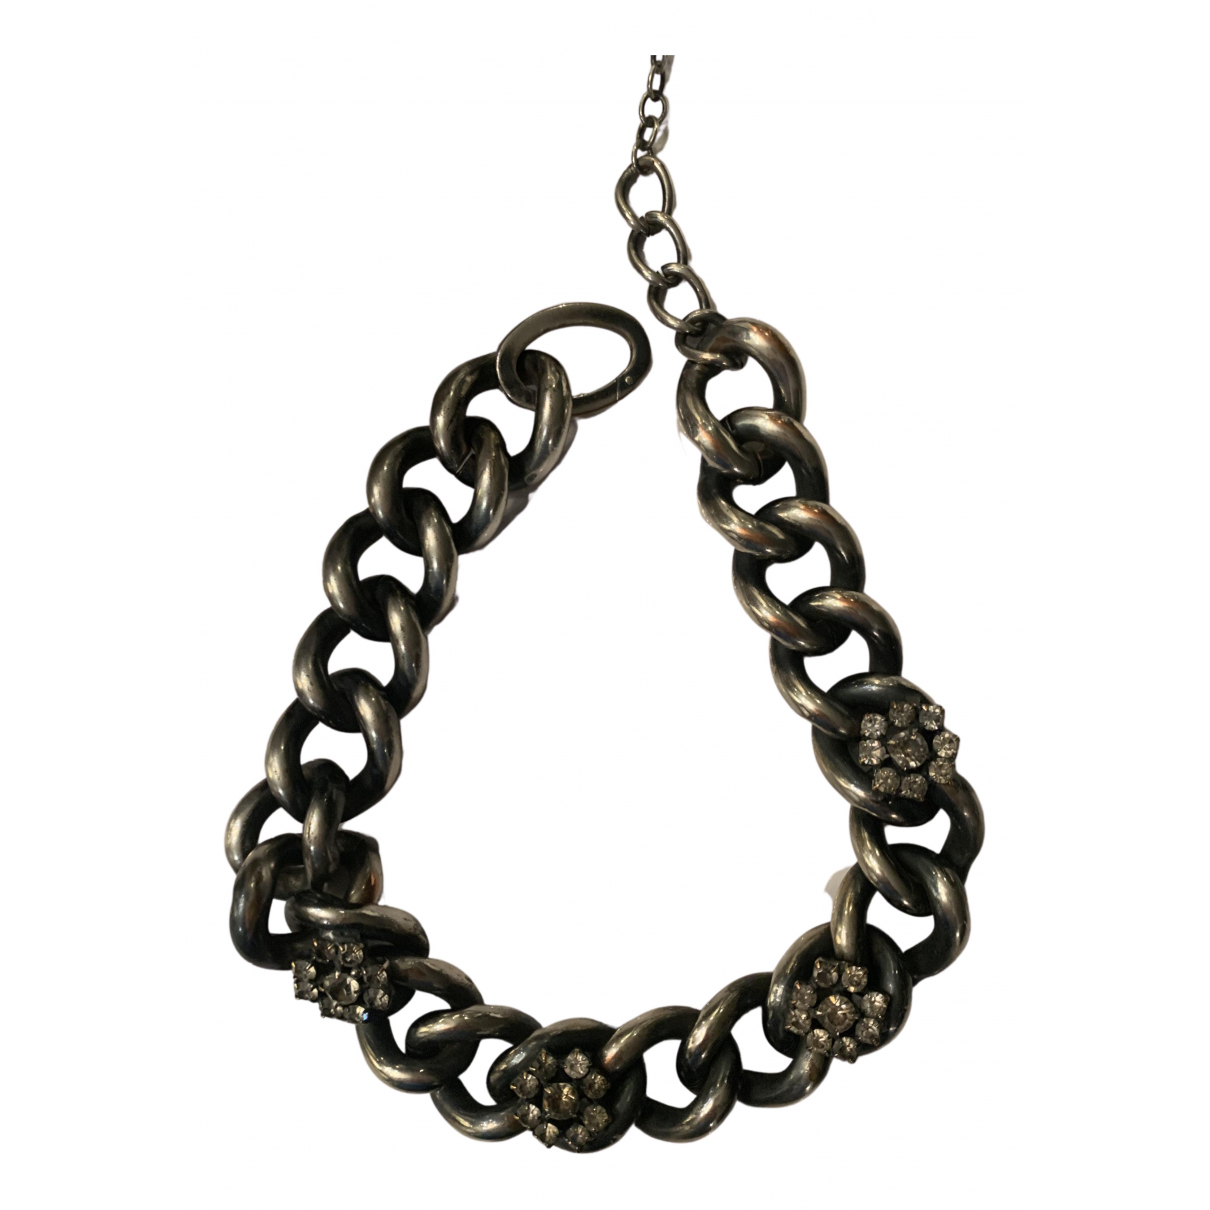 Ermanno Scervino N Grey Metal necklace for Women N